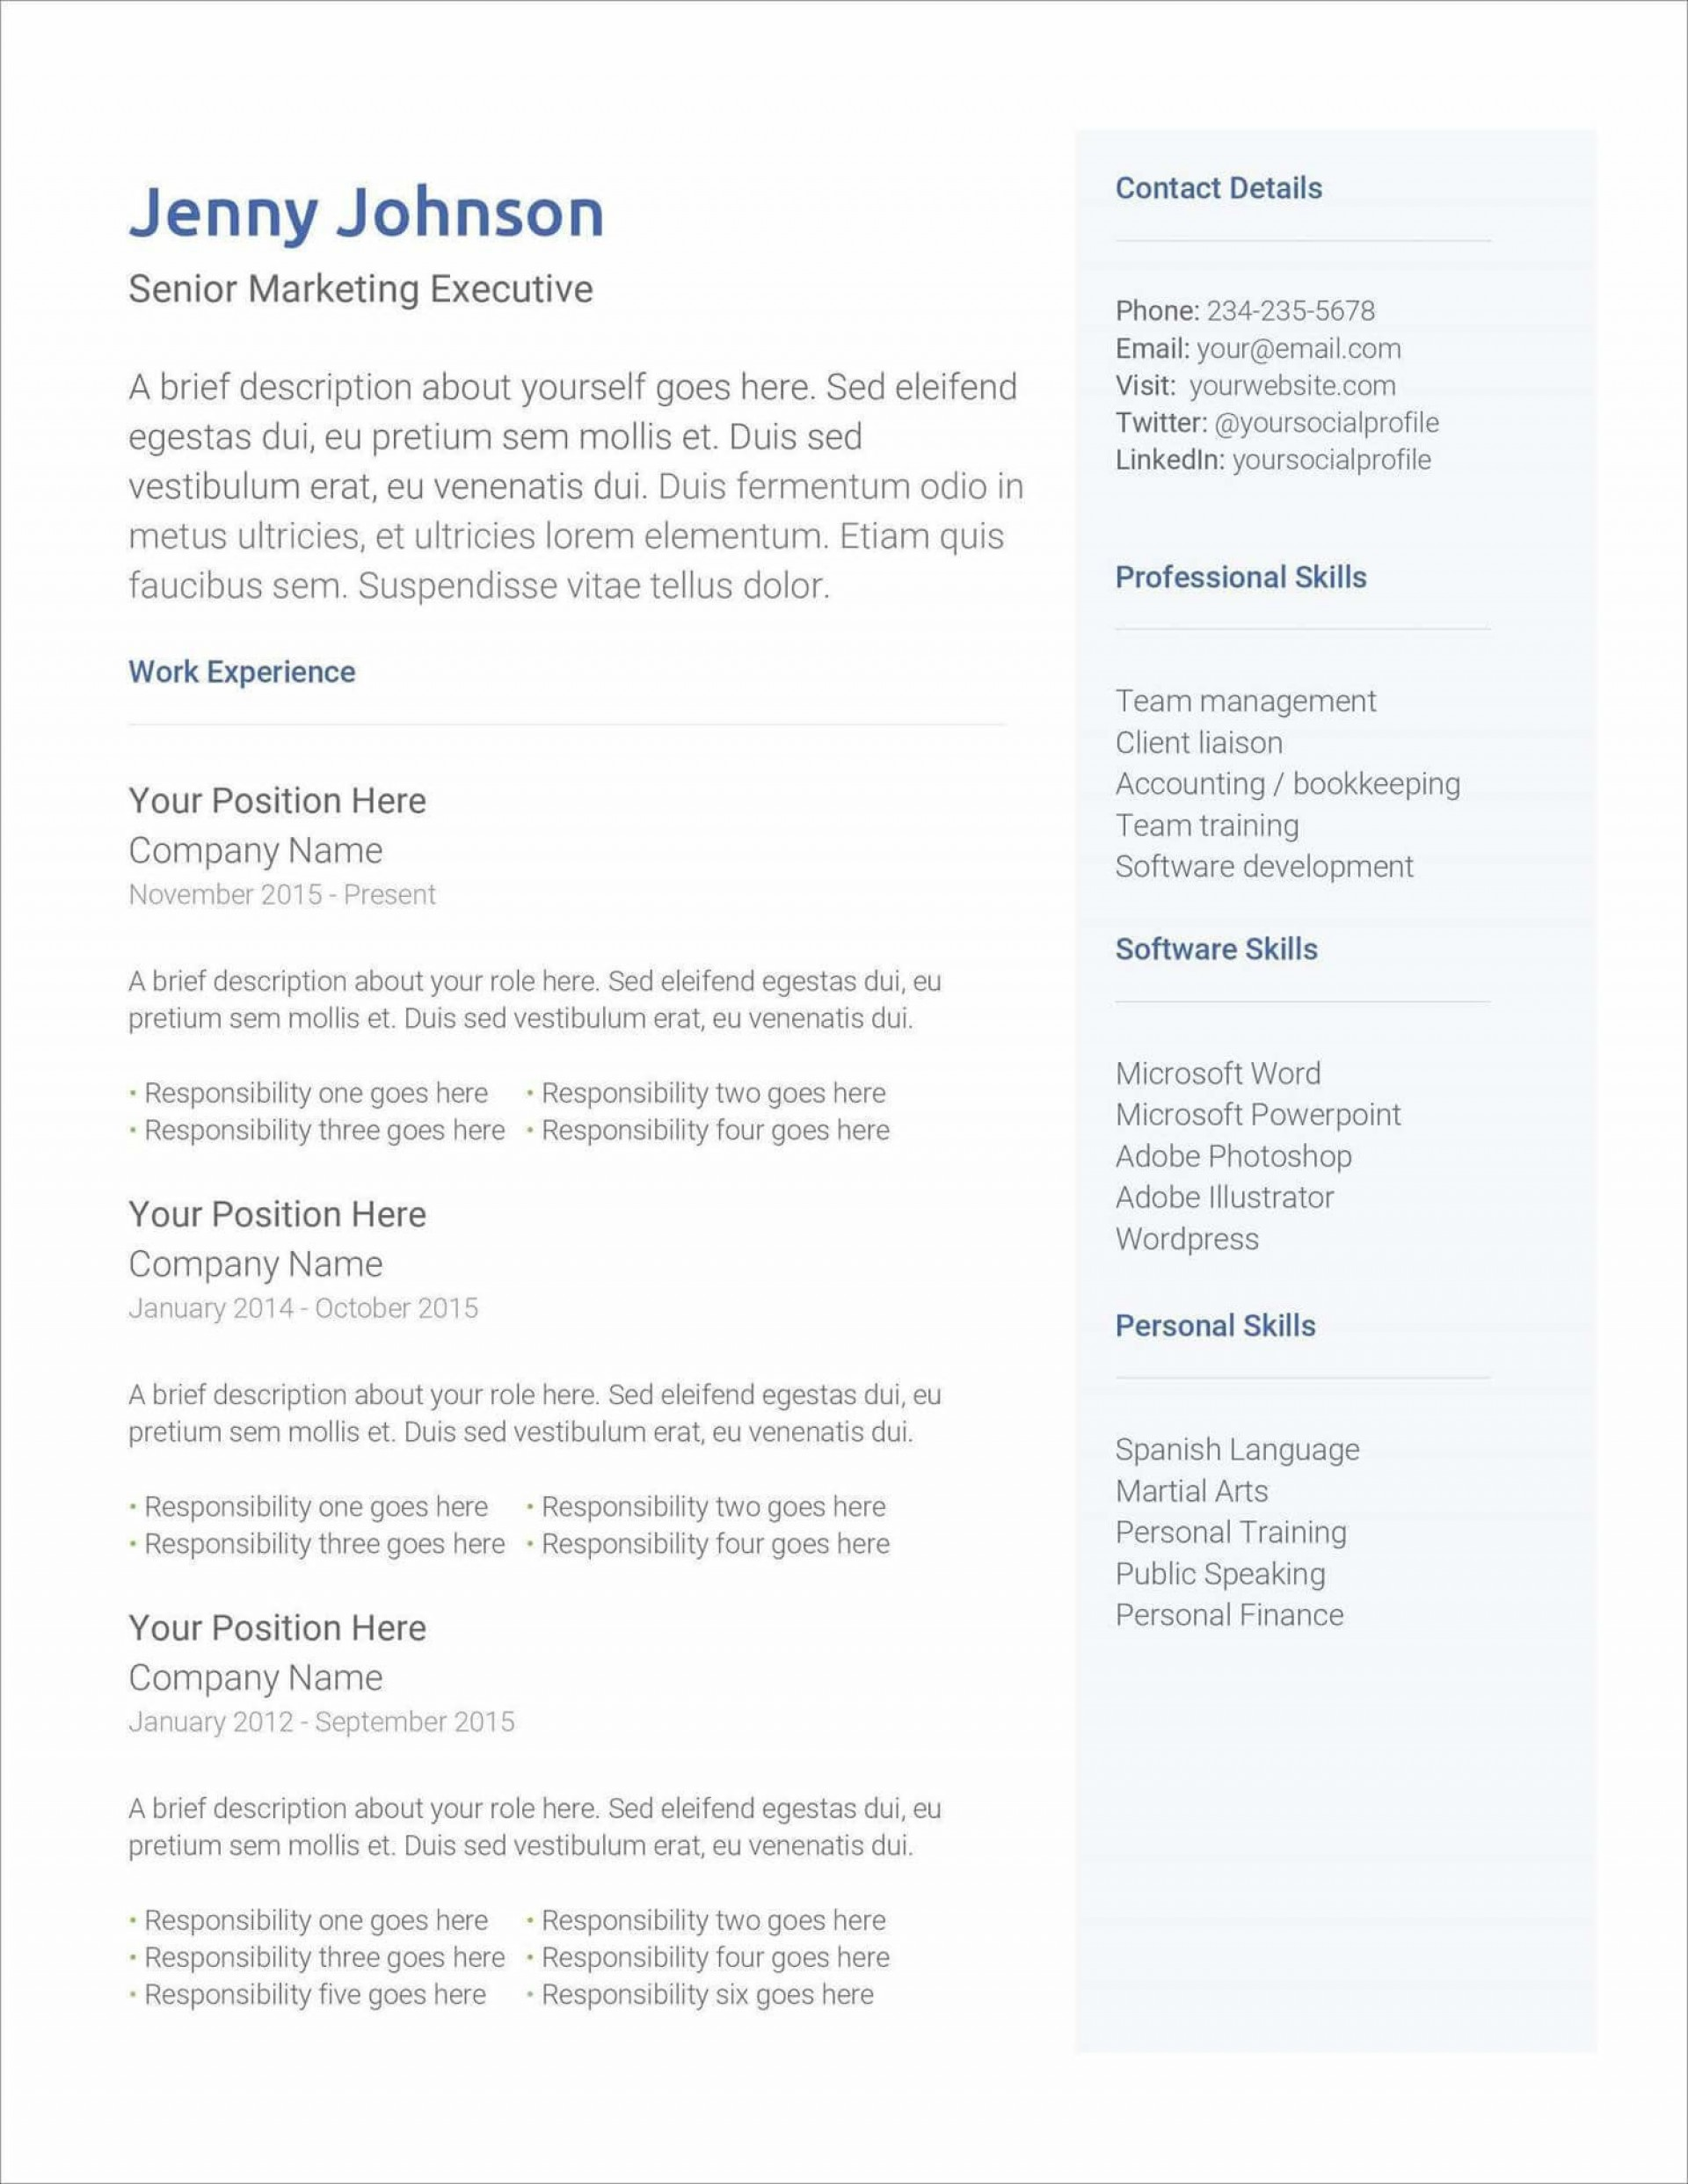 007 Impressive Easy Free Resume Template Design  Templates Online Download Quick Builder1920